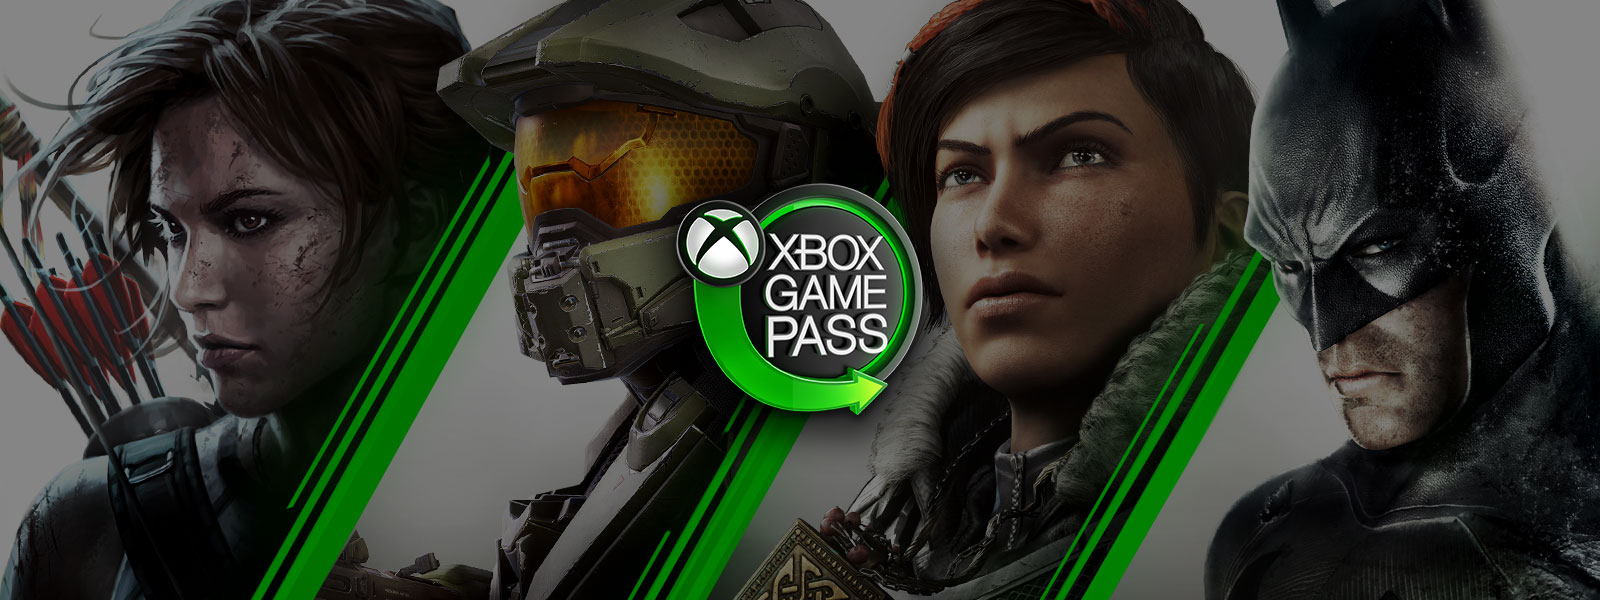 Xbox Game Pass neon sign with Xbox nexus logo and green arrow surrounded by Lara Croft, Master Chief, Kait Diaz, and Batman.